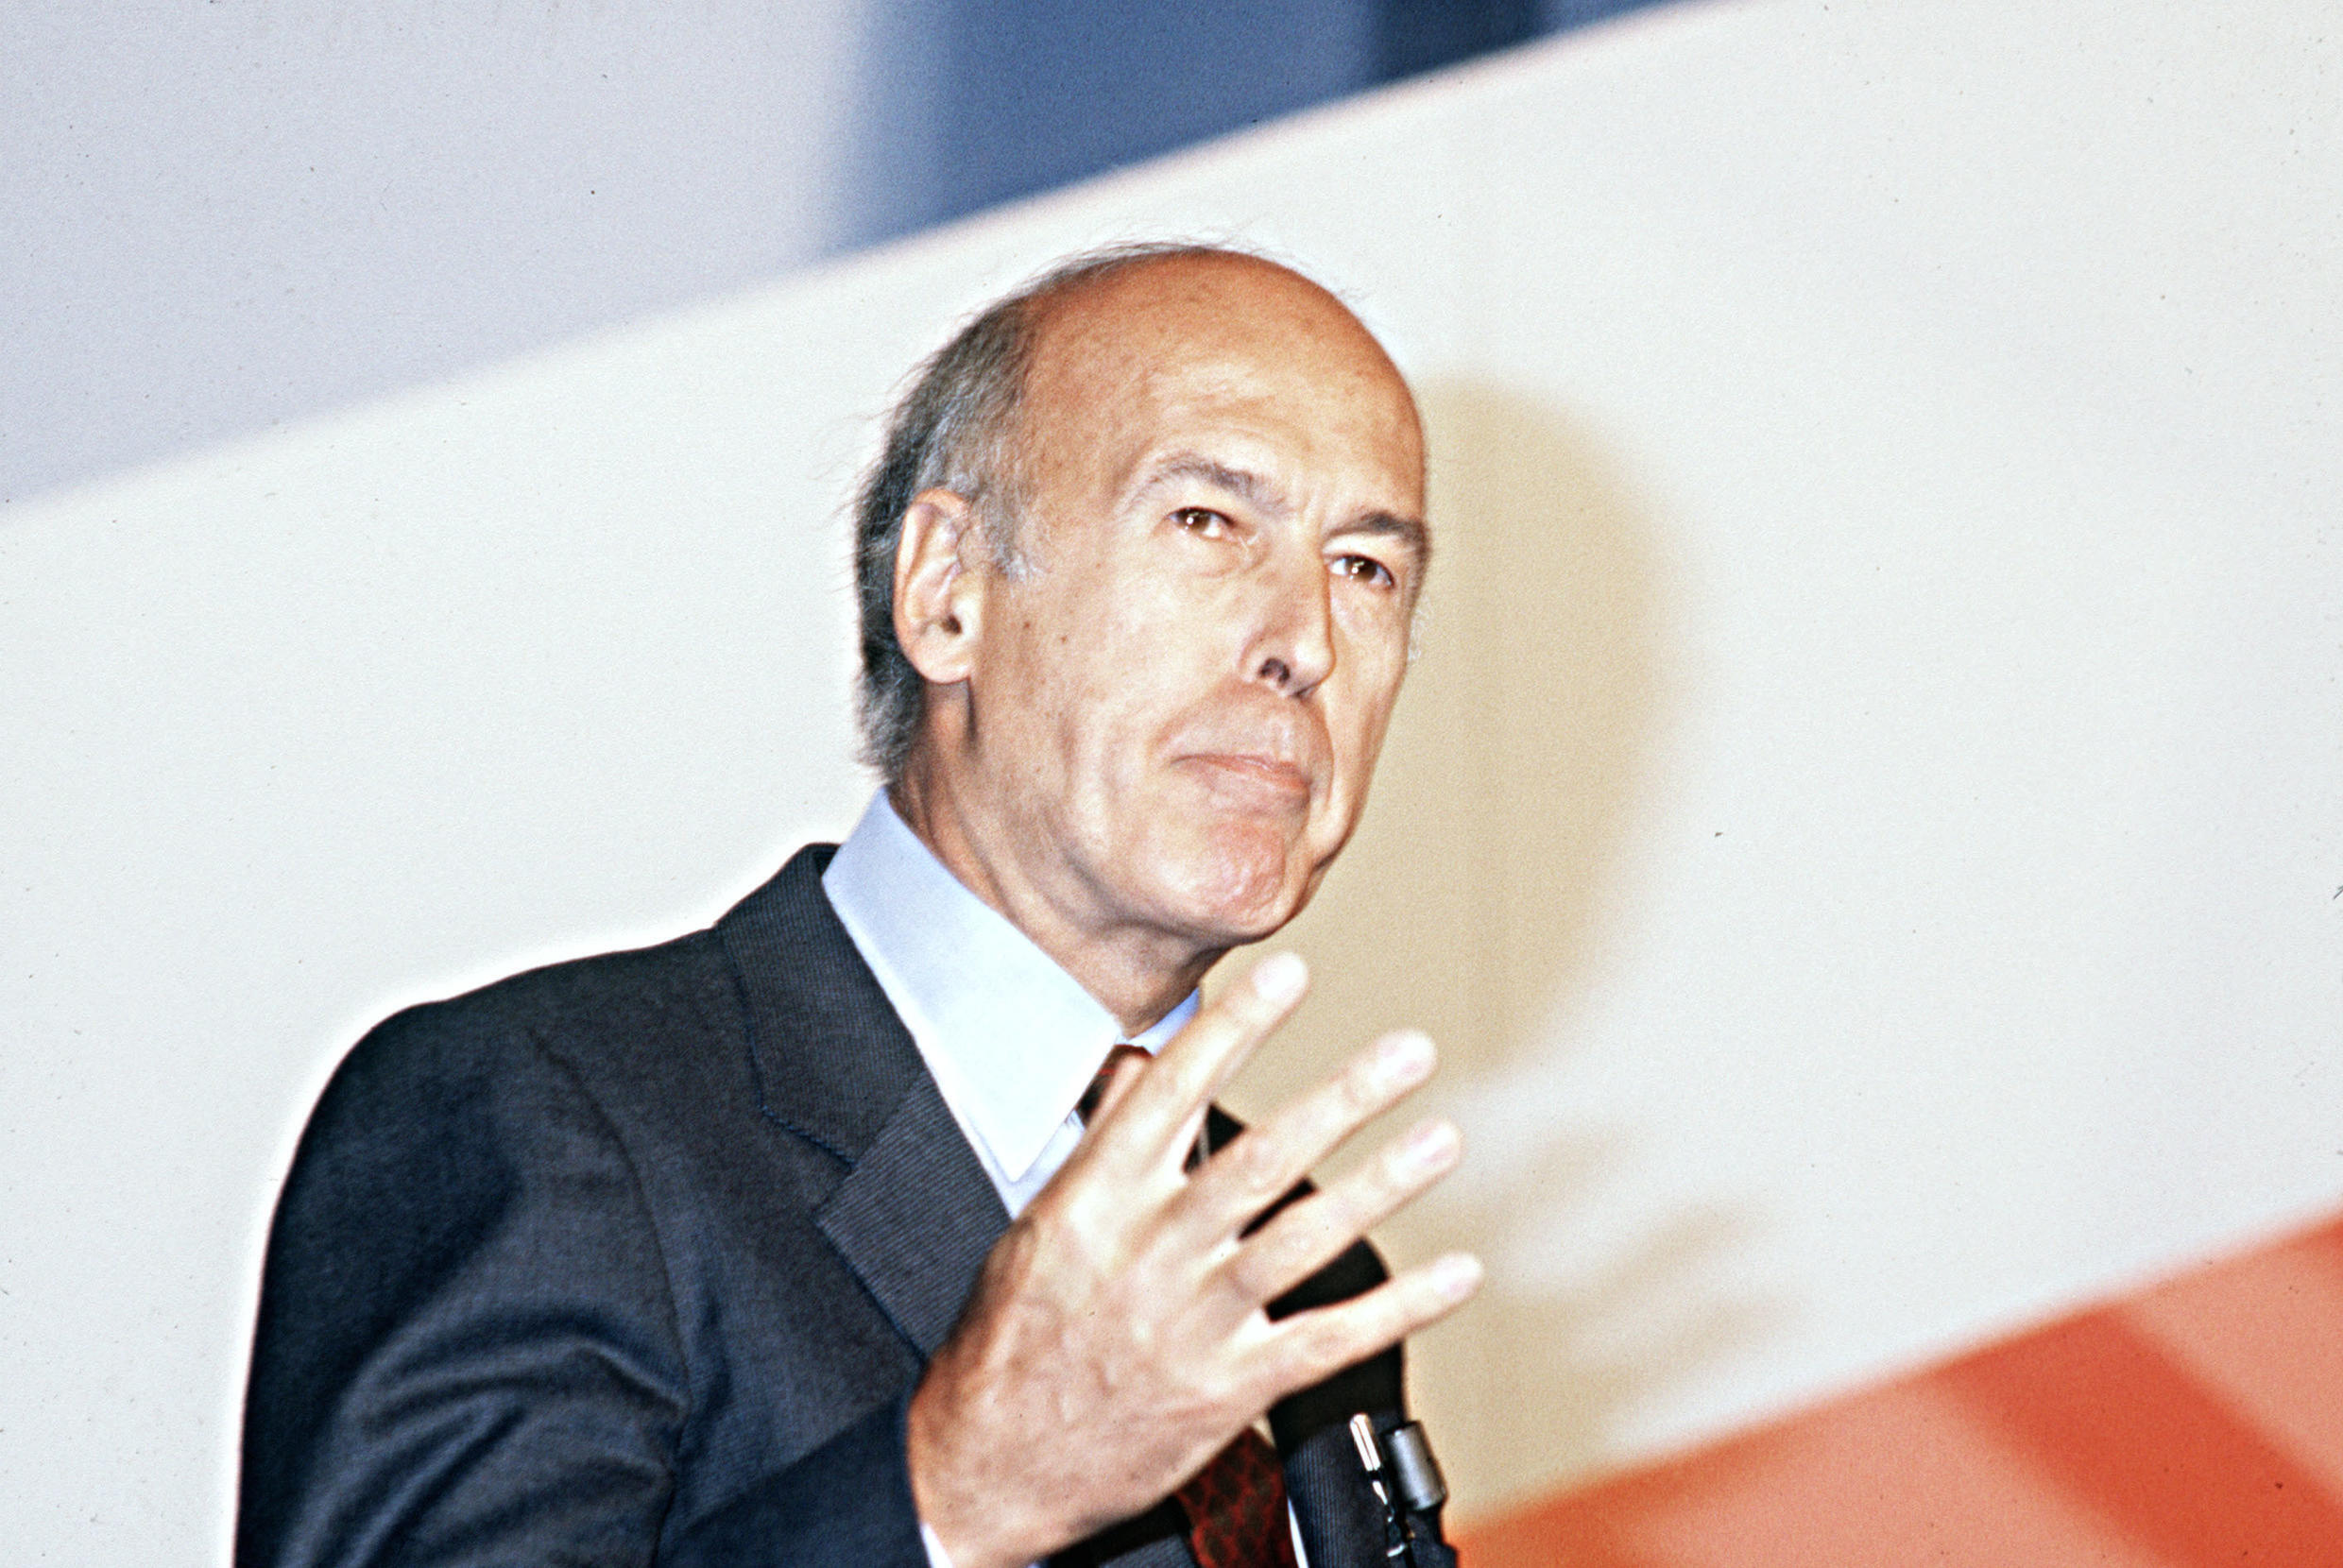 Valery Giscard d'Estaing ushered in a spree of radical reforms when he became president